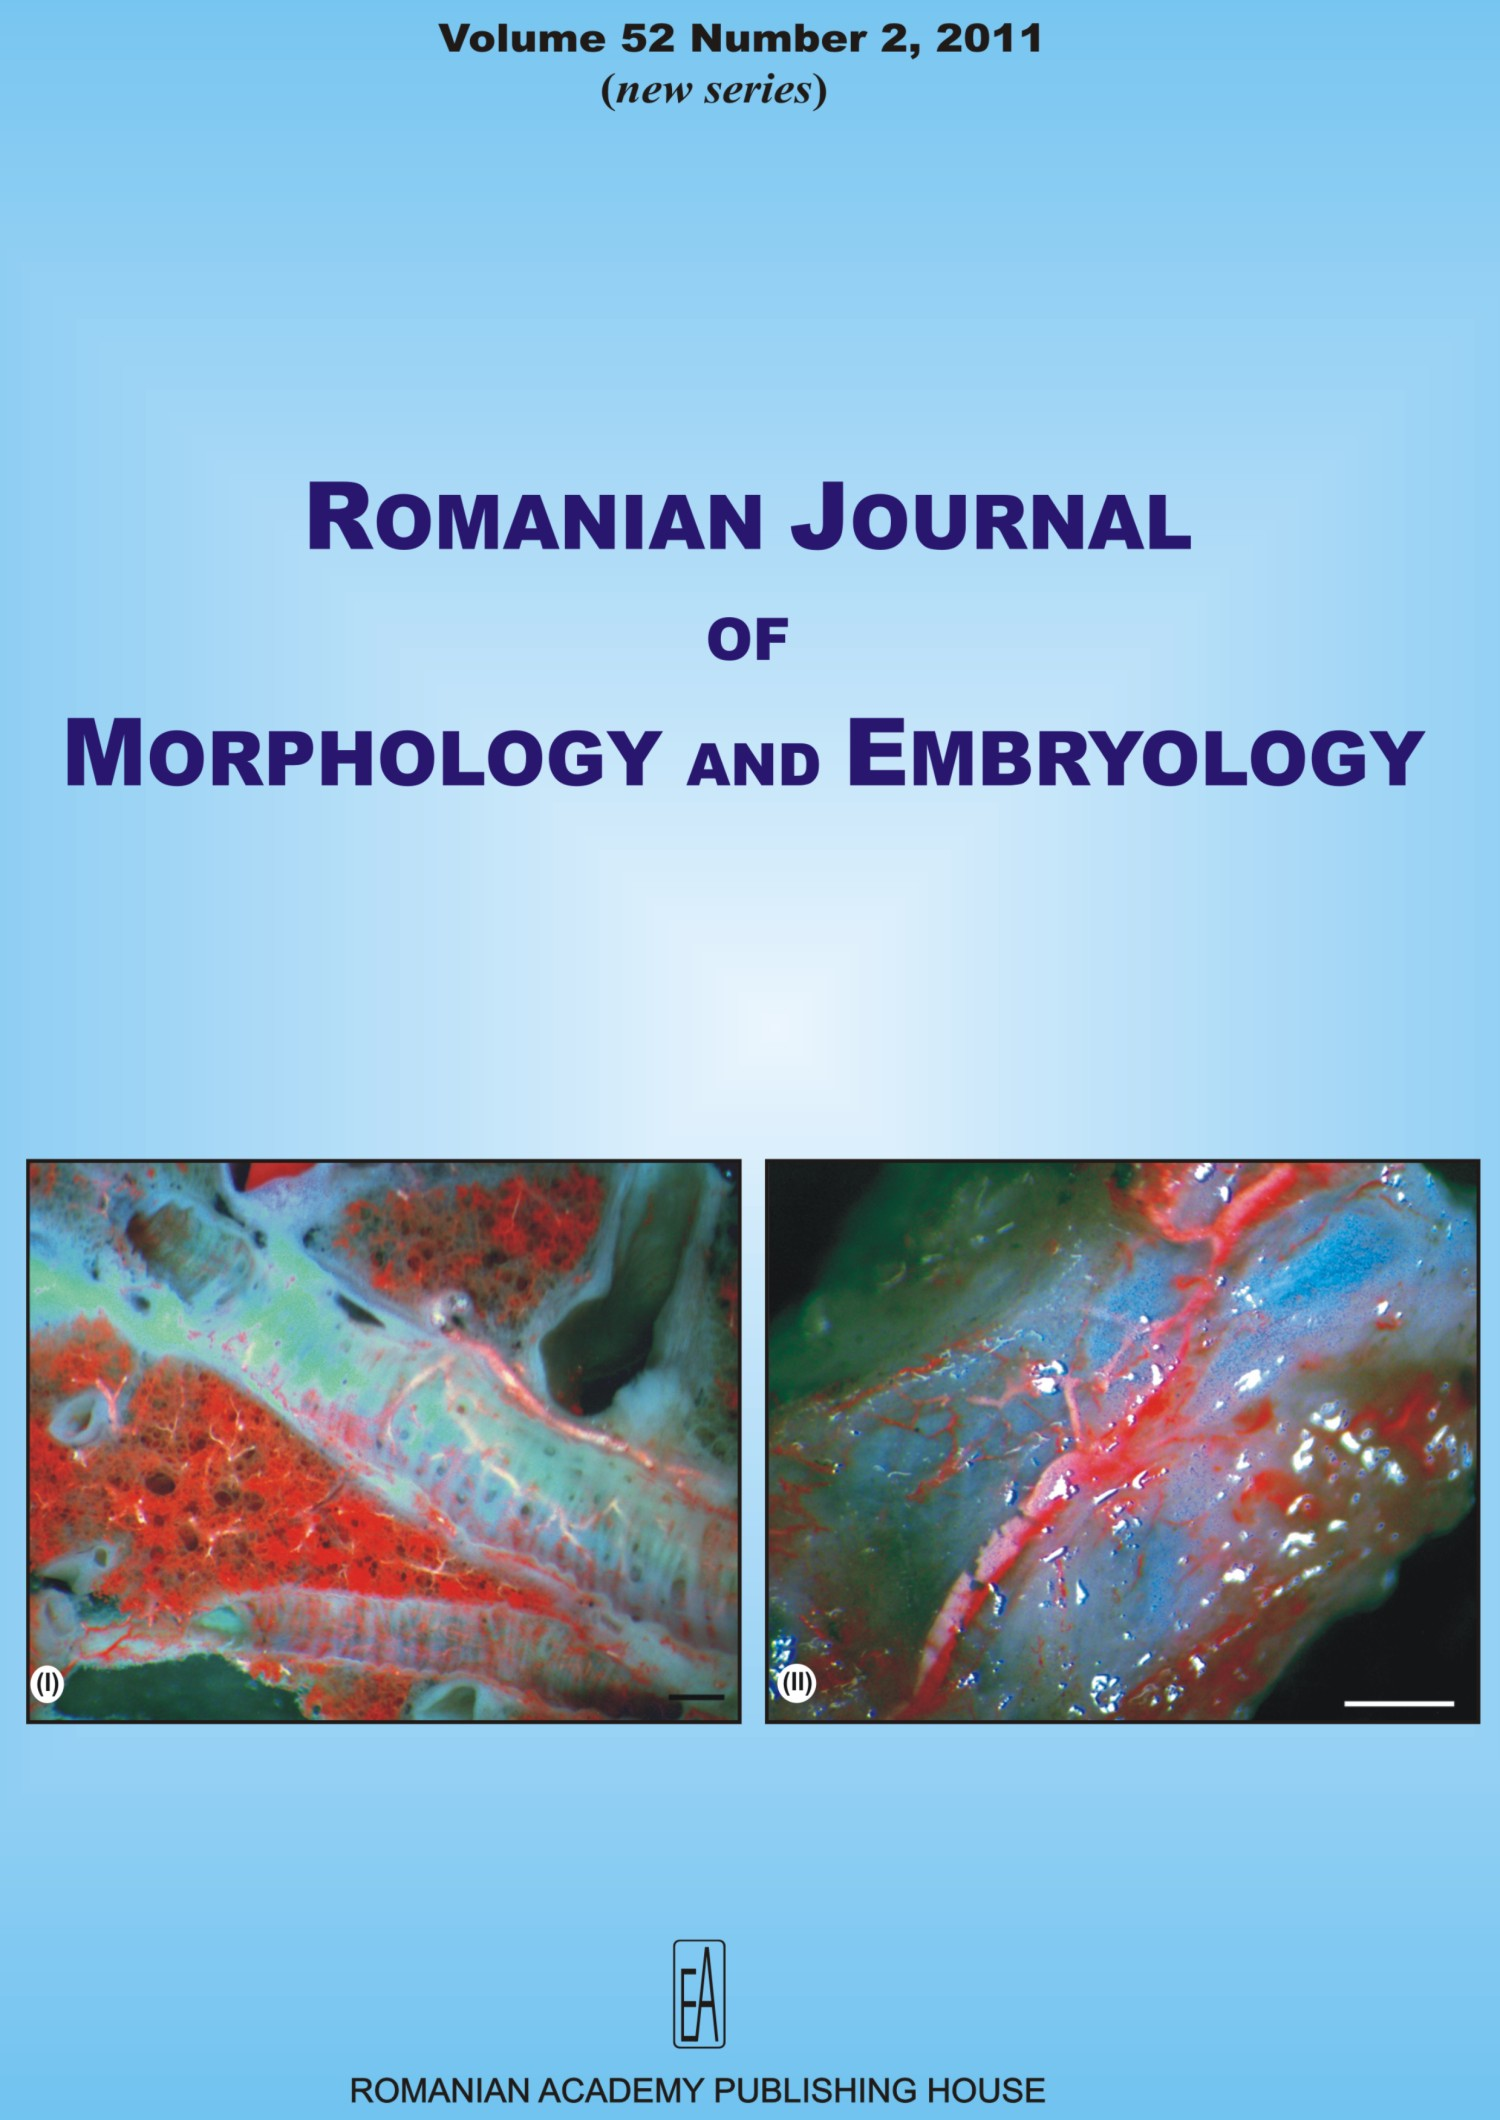 Romanian Journal of Morphology and Embryology, vol. 52 no. 2, 2011